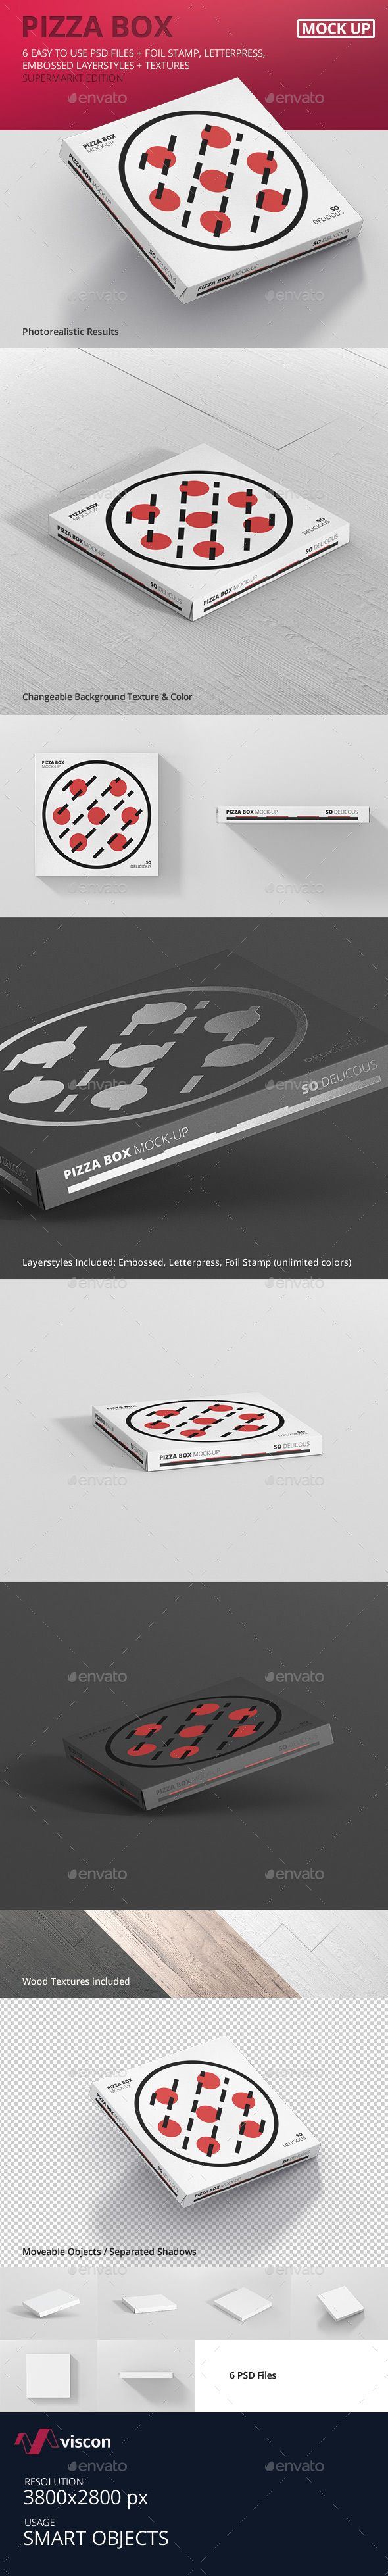 Pizza Box Mock-Up - Supermarket Edition. Download here: http://graphicriver.net/item/pizza-box-mockup-supermarket-edition/16323354?ref=ksioks